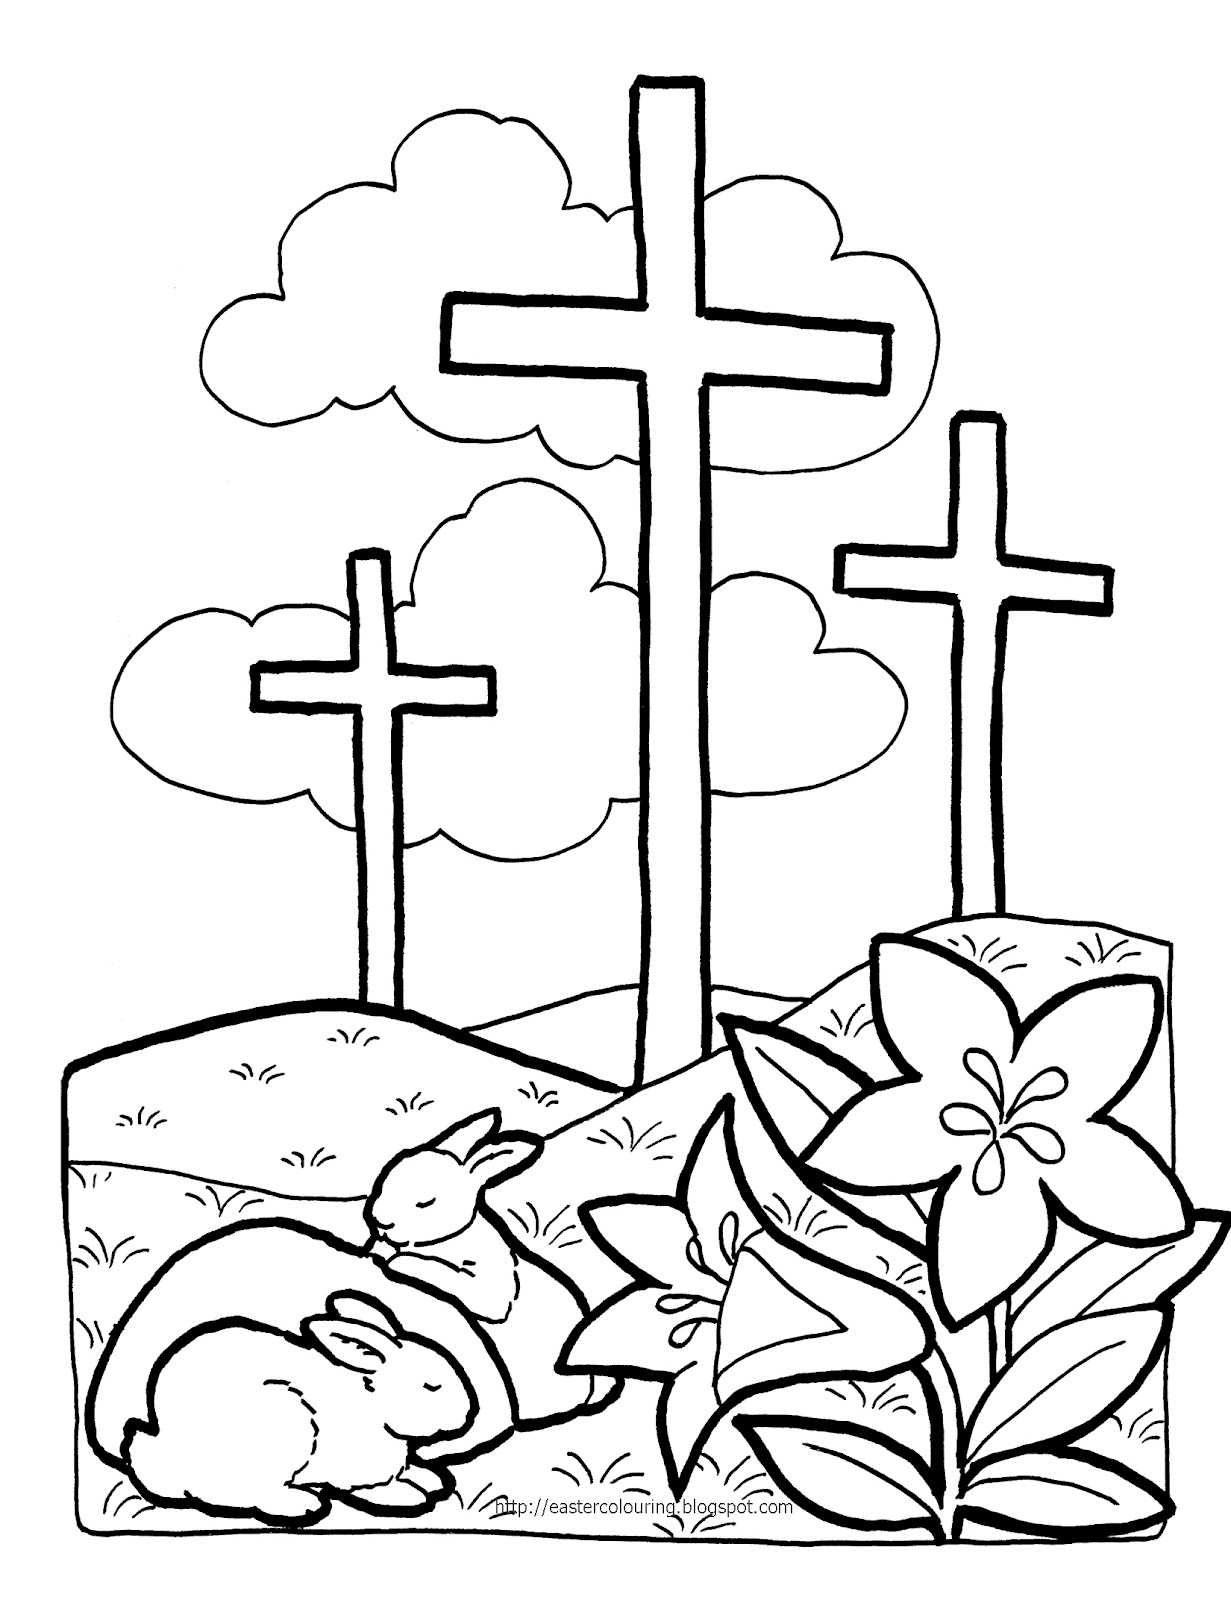 Christian Coloring Pages Stunning Free Printable Christian Coloring Pages For Kids  Best Coloring .